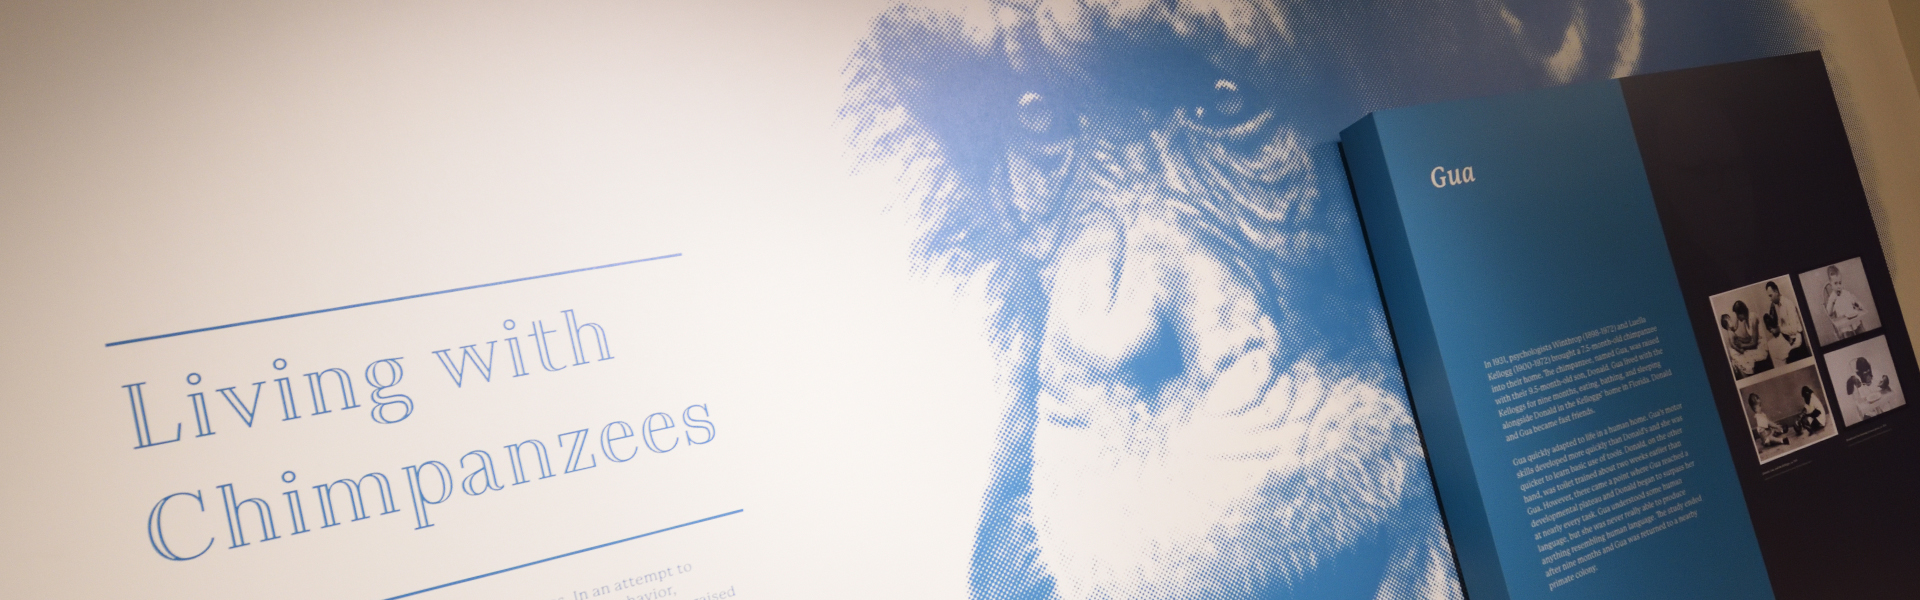 museum display titled Living With Chimpanzees